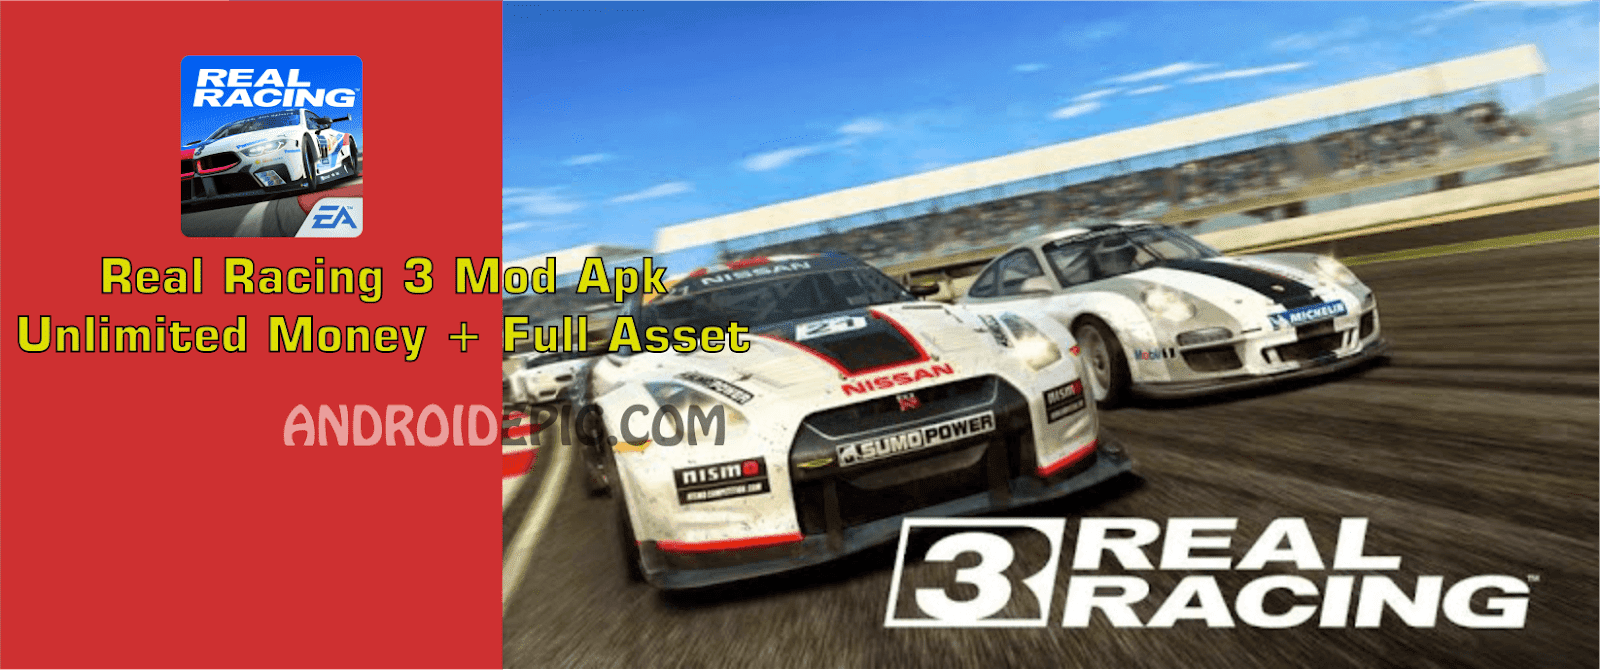 Real racing 3 mod apk mod money full asset android epic